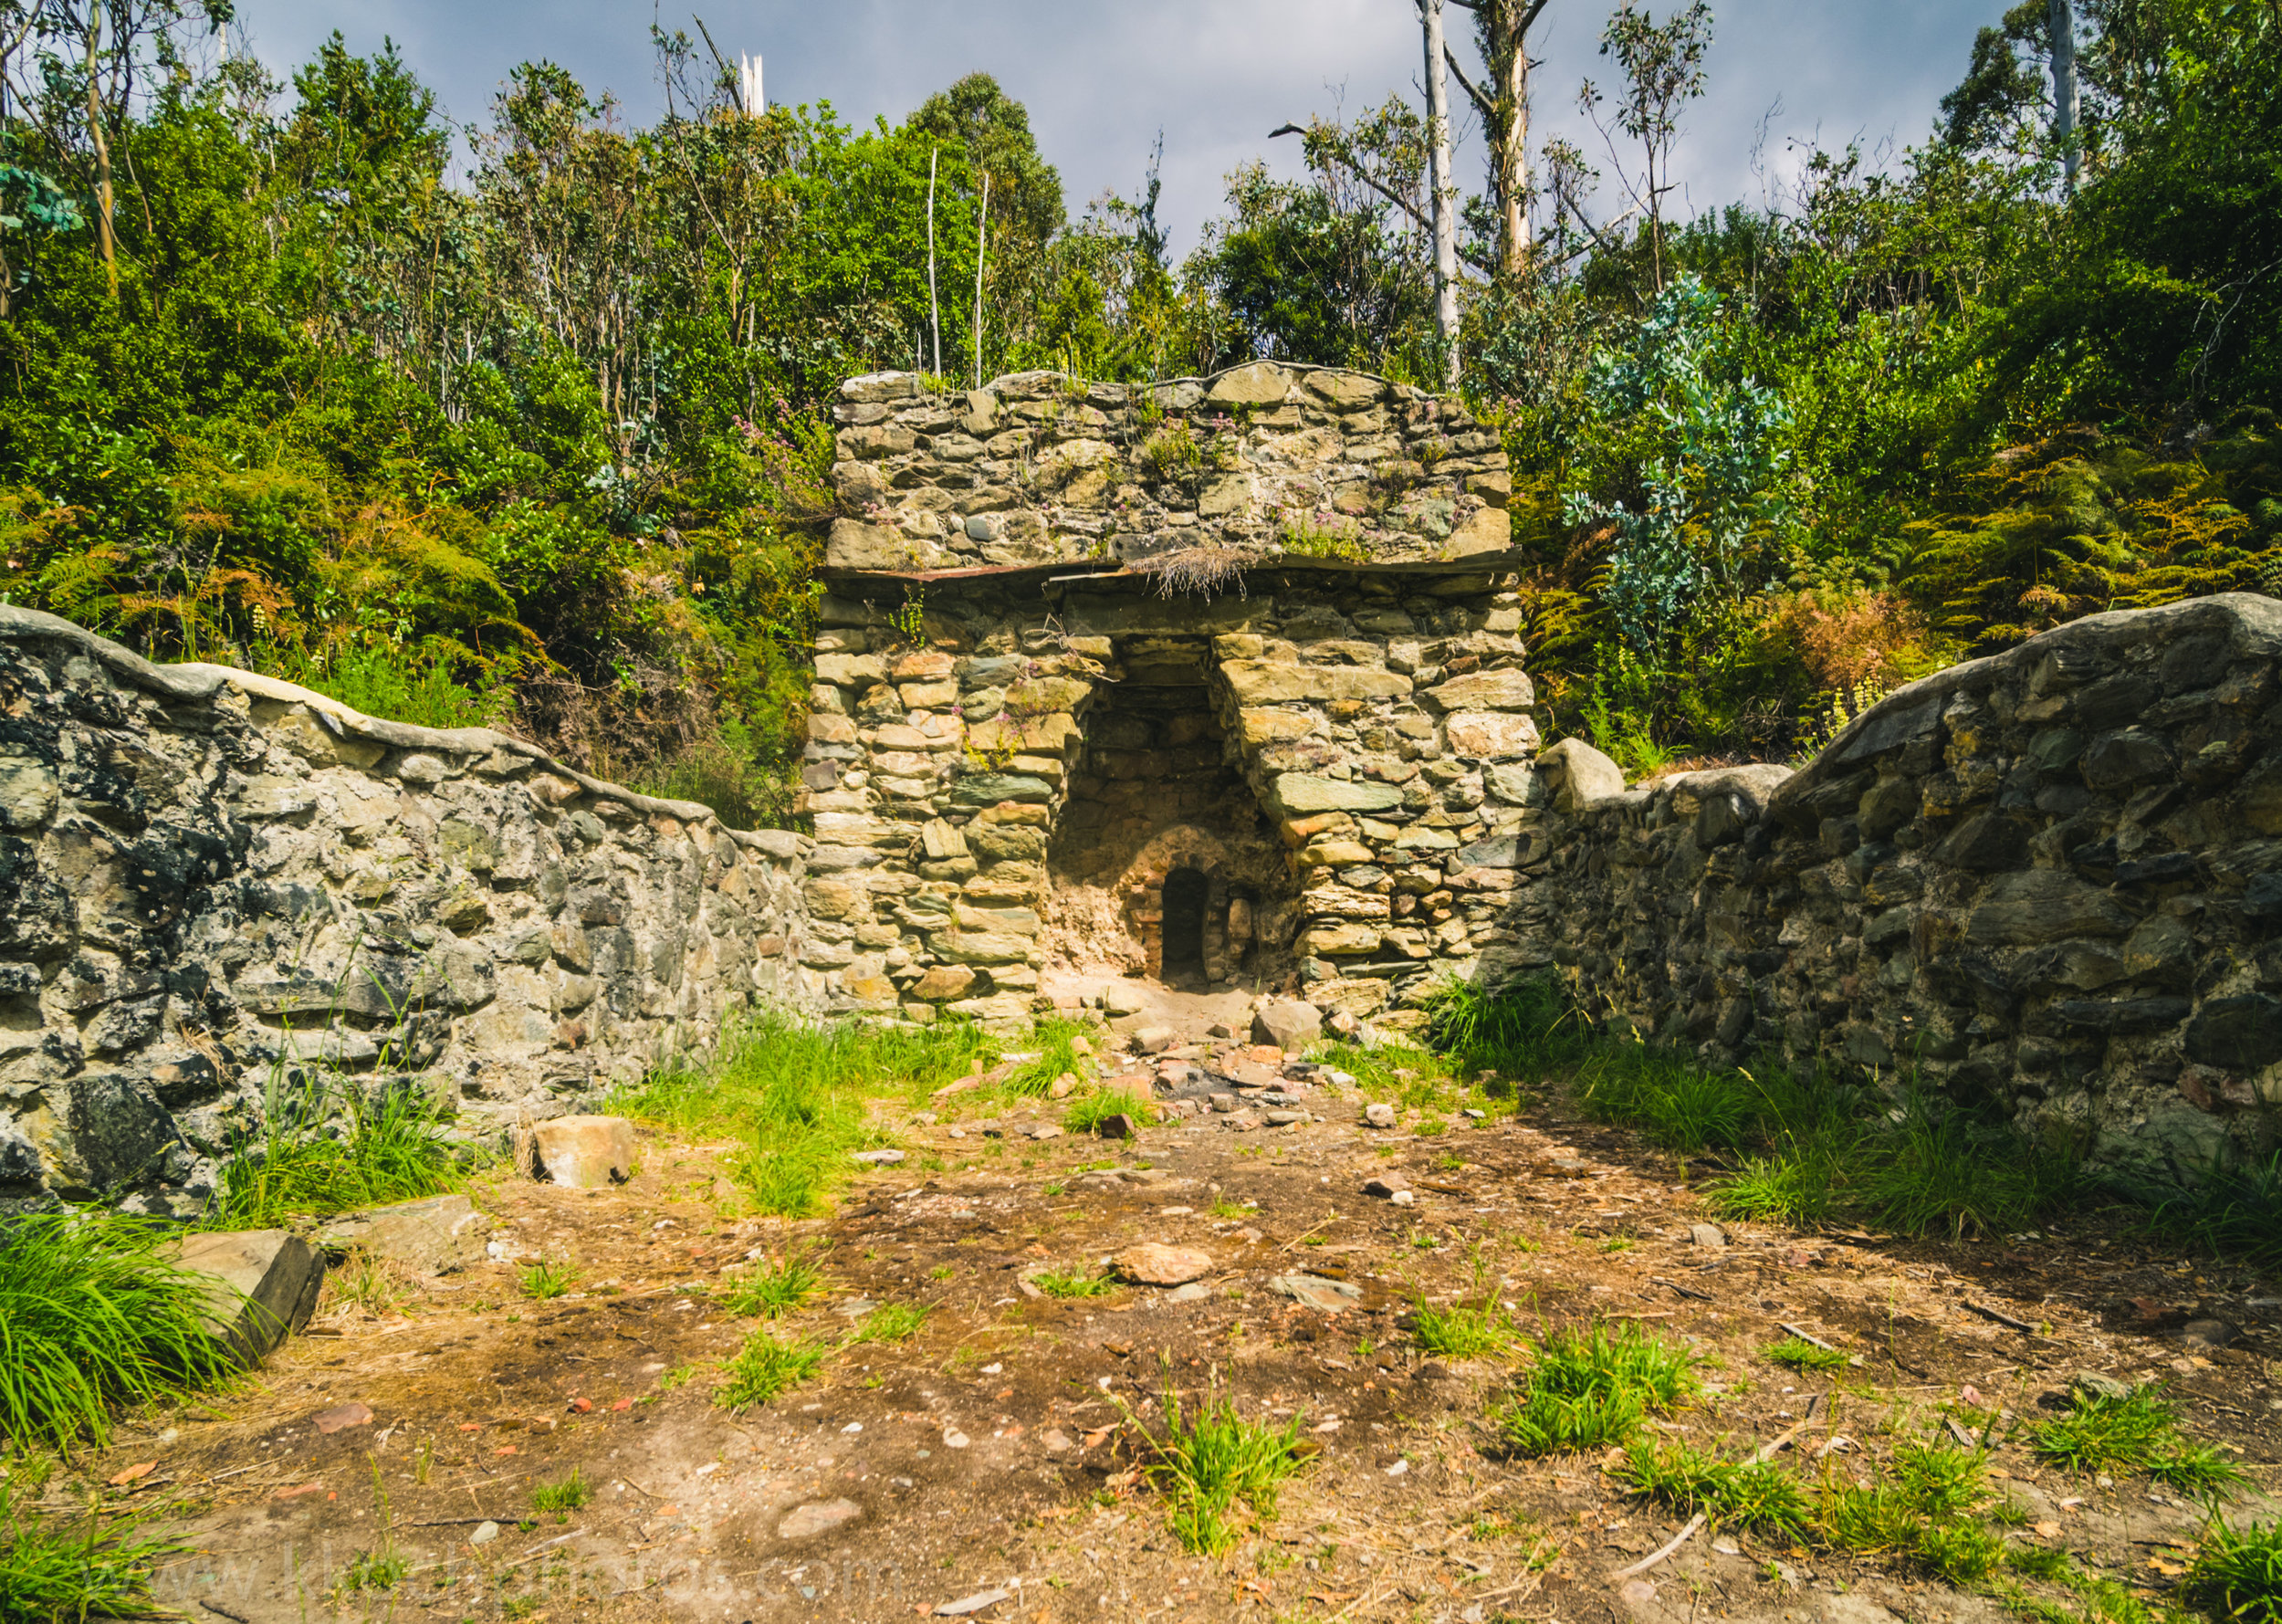 an old limestome kiln